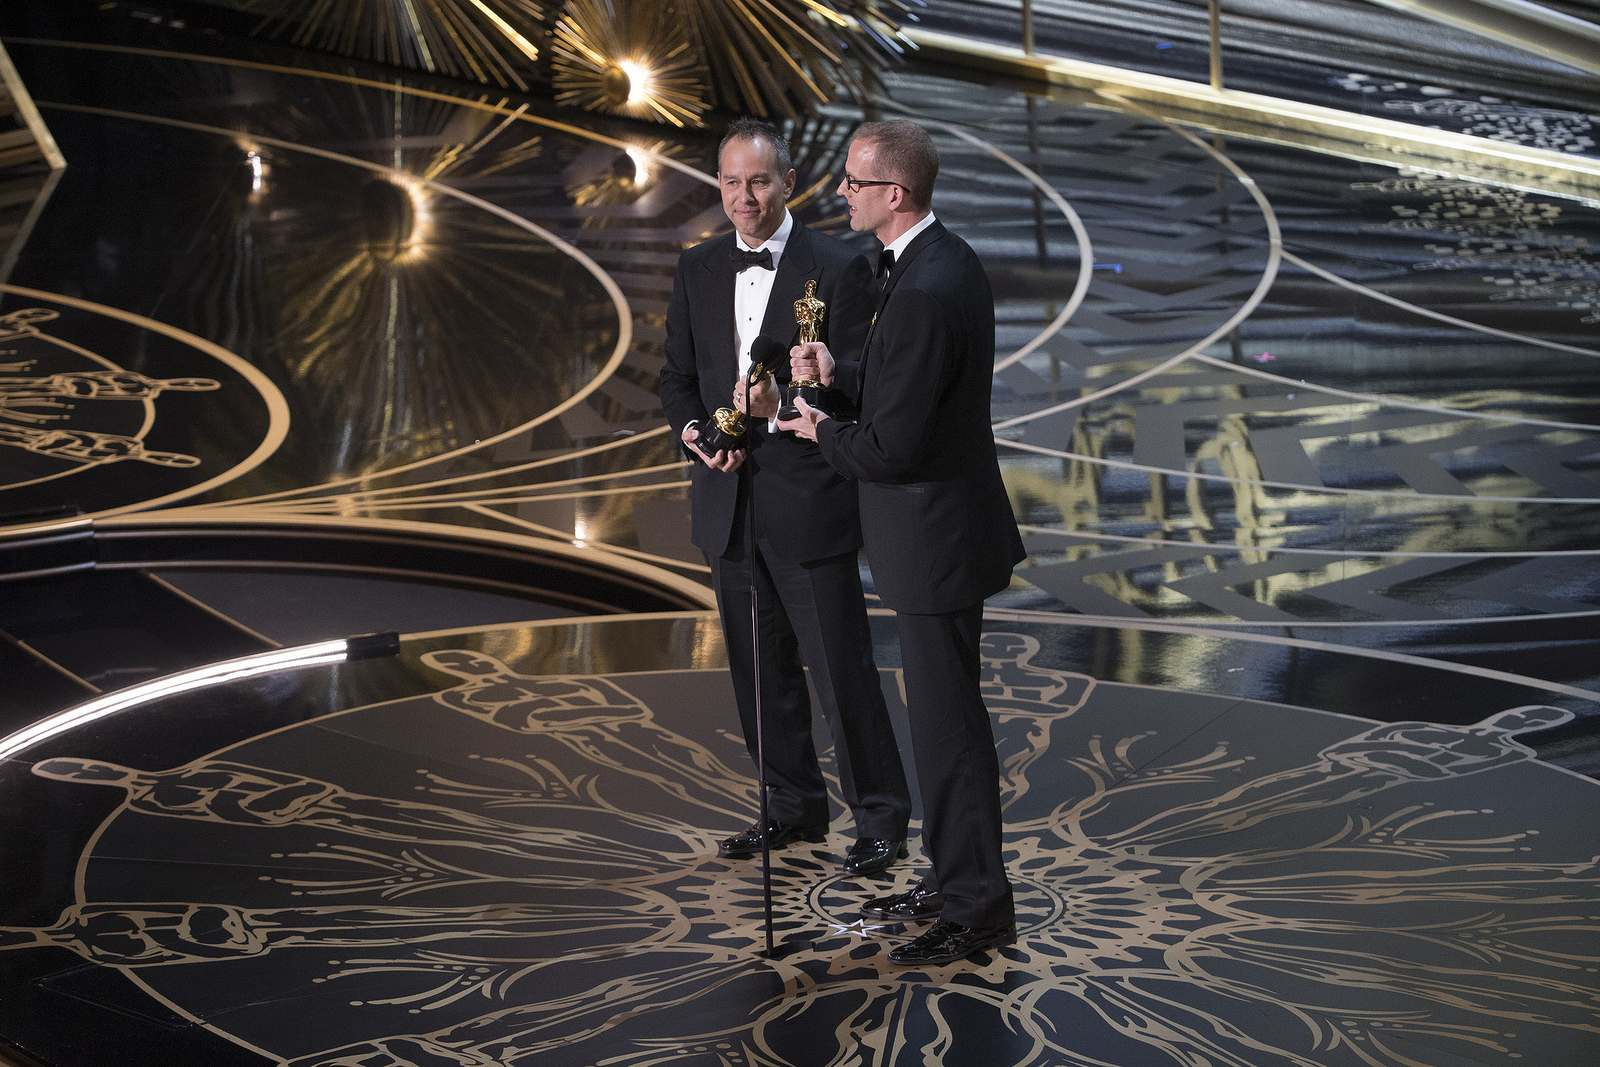 oscars 20166 The 88th Academy Awards Results